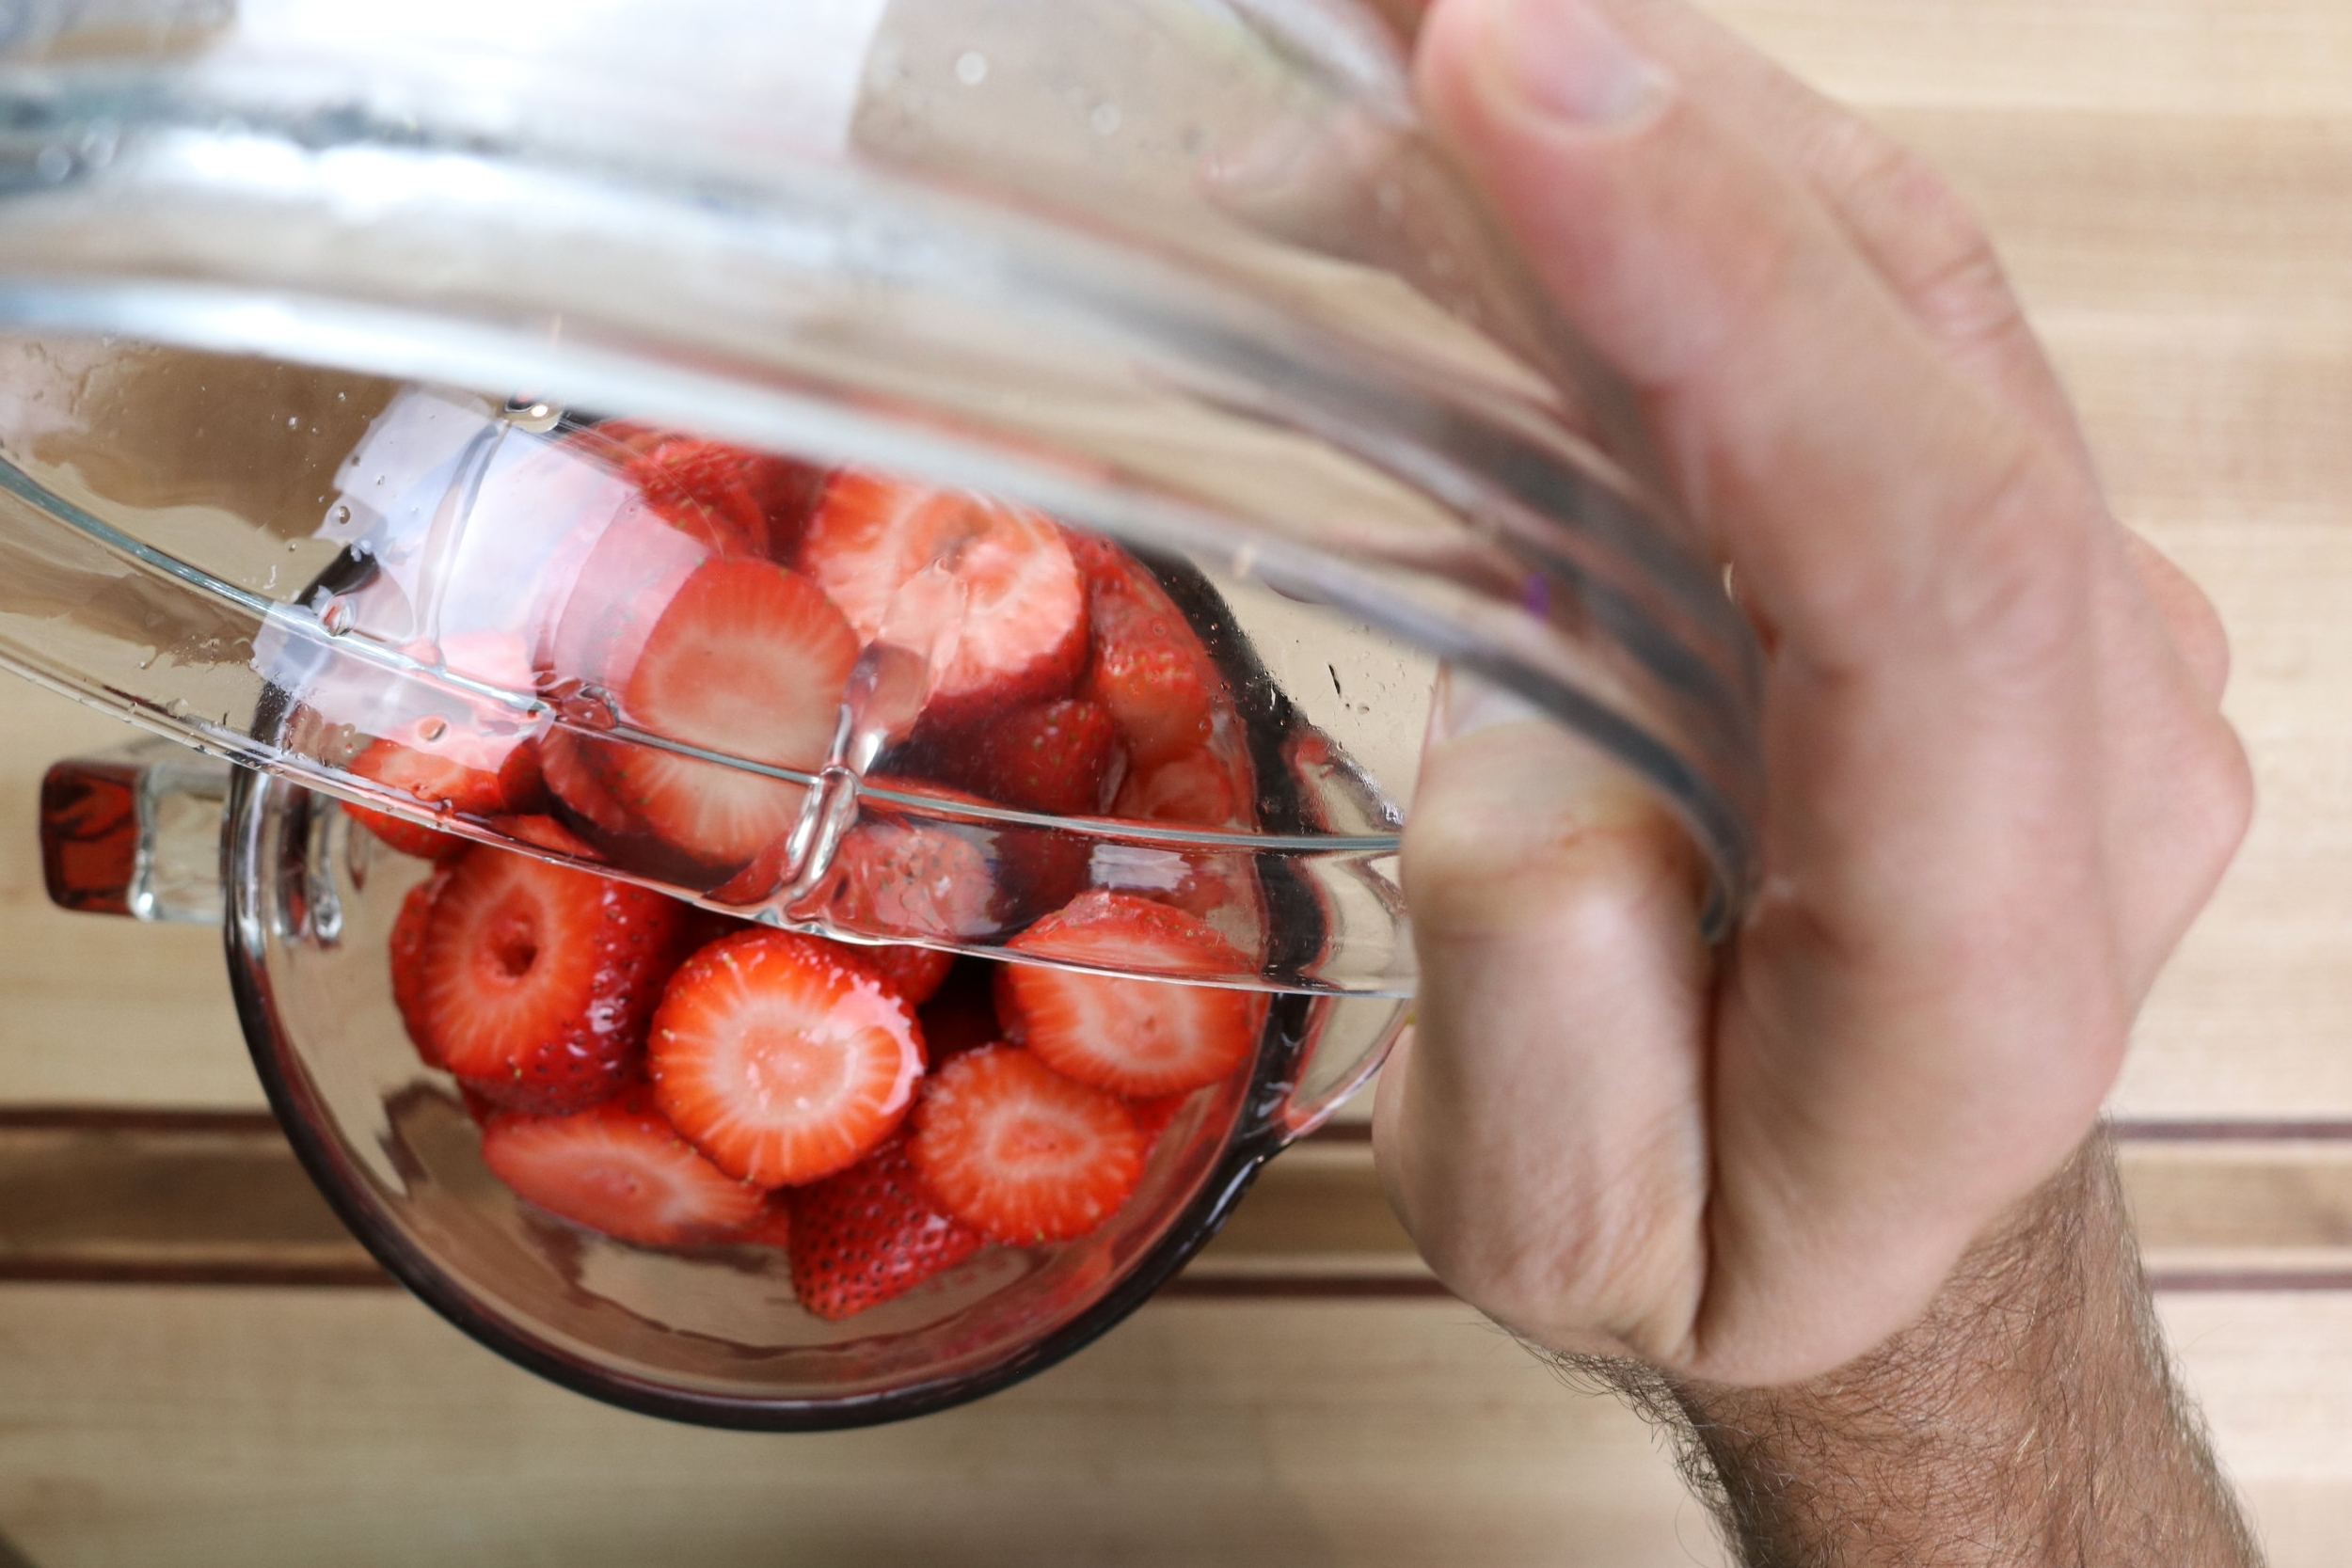 6. Place the stem-less strawberries and citrus juice in a blender and purée. -